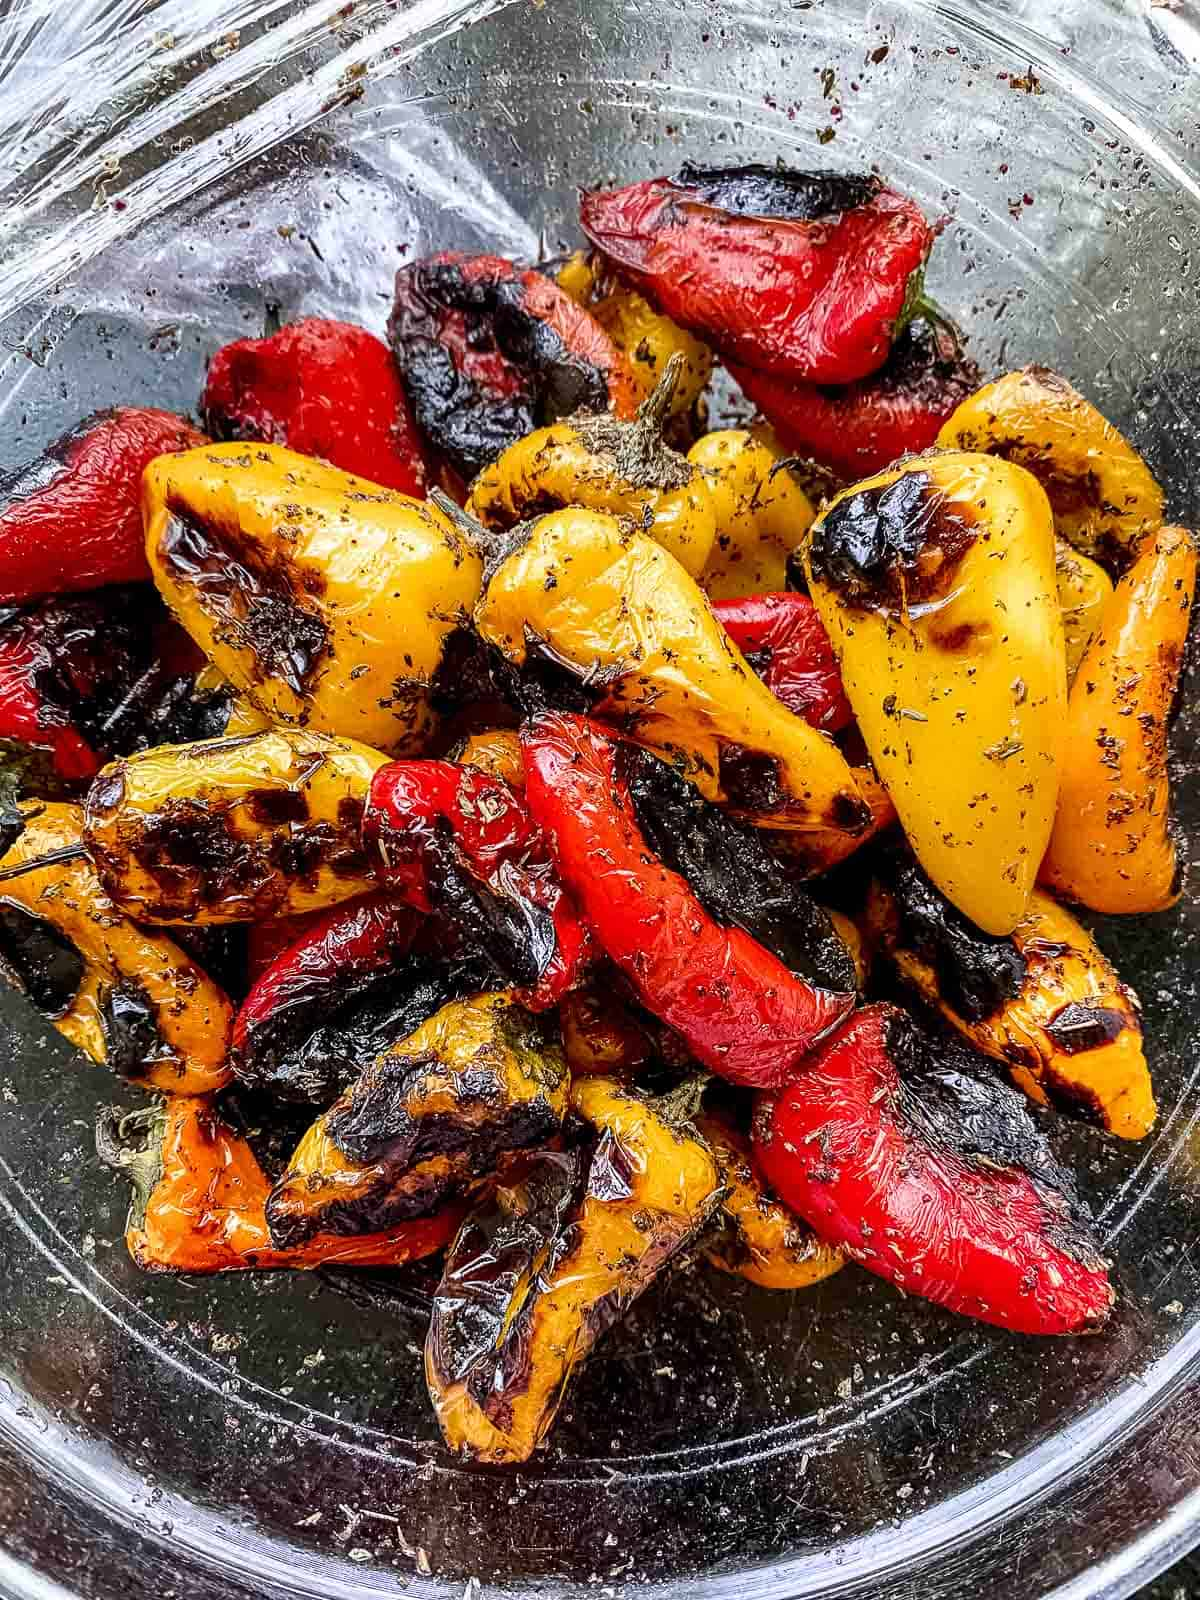 Grilled sweet peppers in a bowl